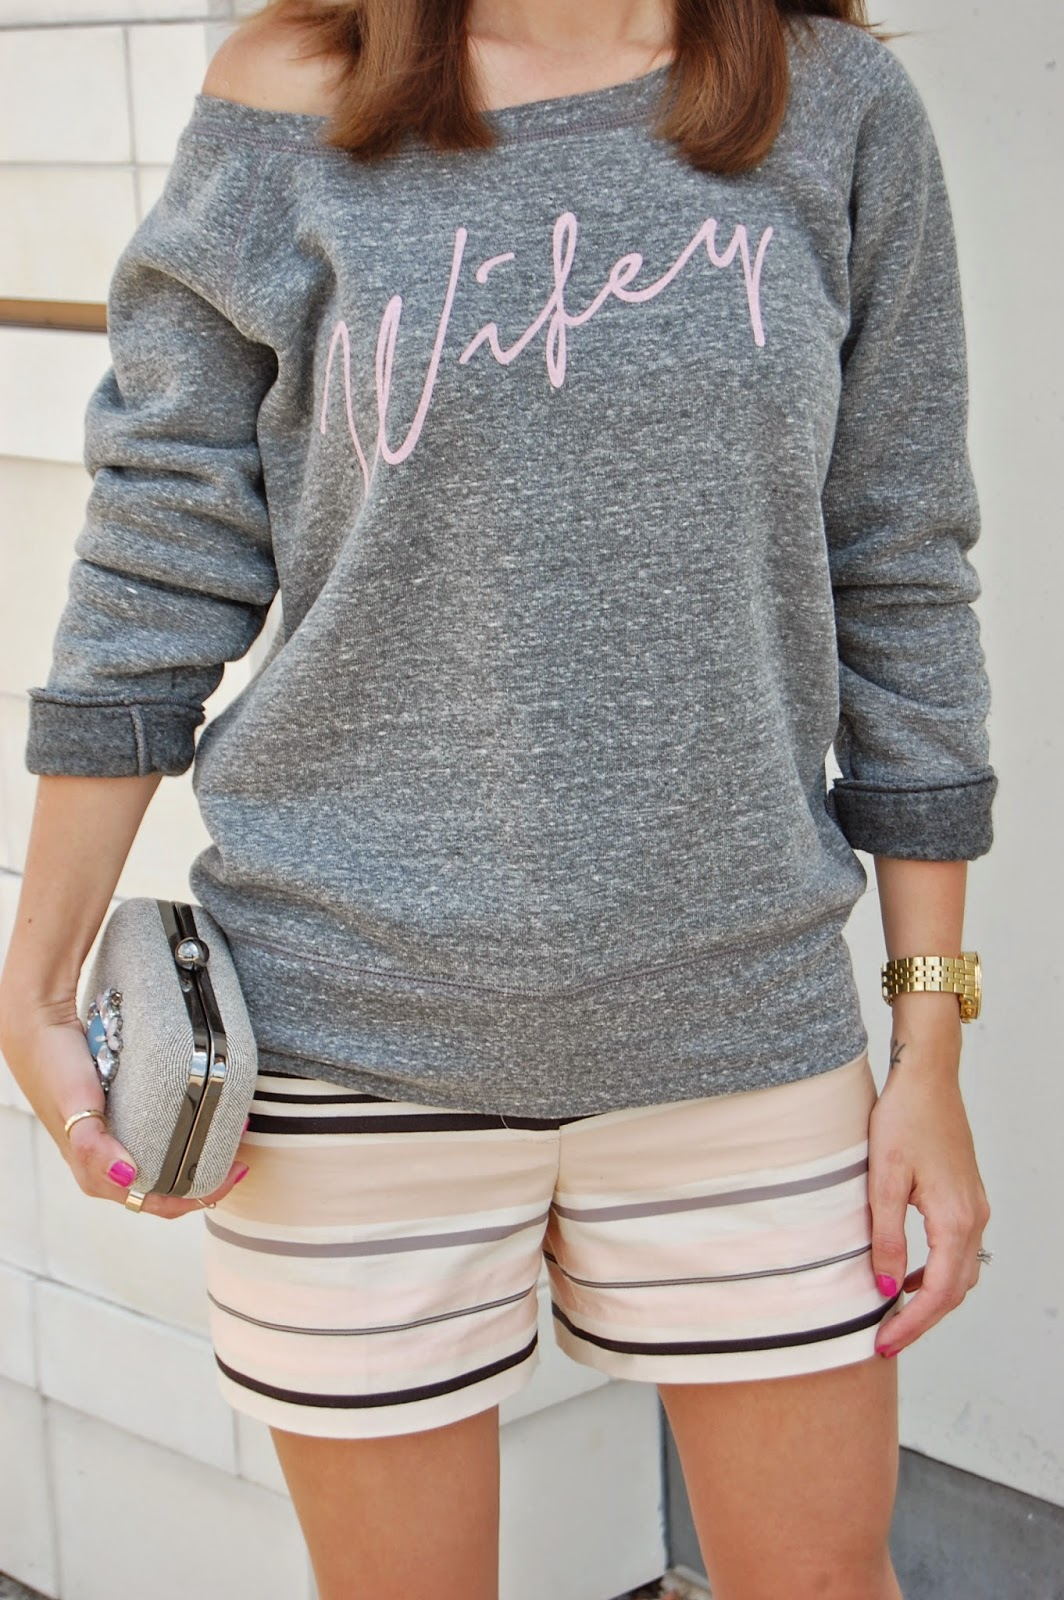 Wearing Team Bride Apparel Wifey Slouchy Sweatshirt, Loft Pink Striped Shorts, Loft thin strap heels, Sweatshirt, shorts and heels look